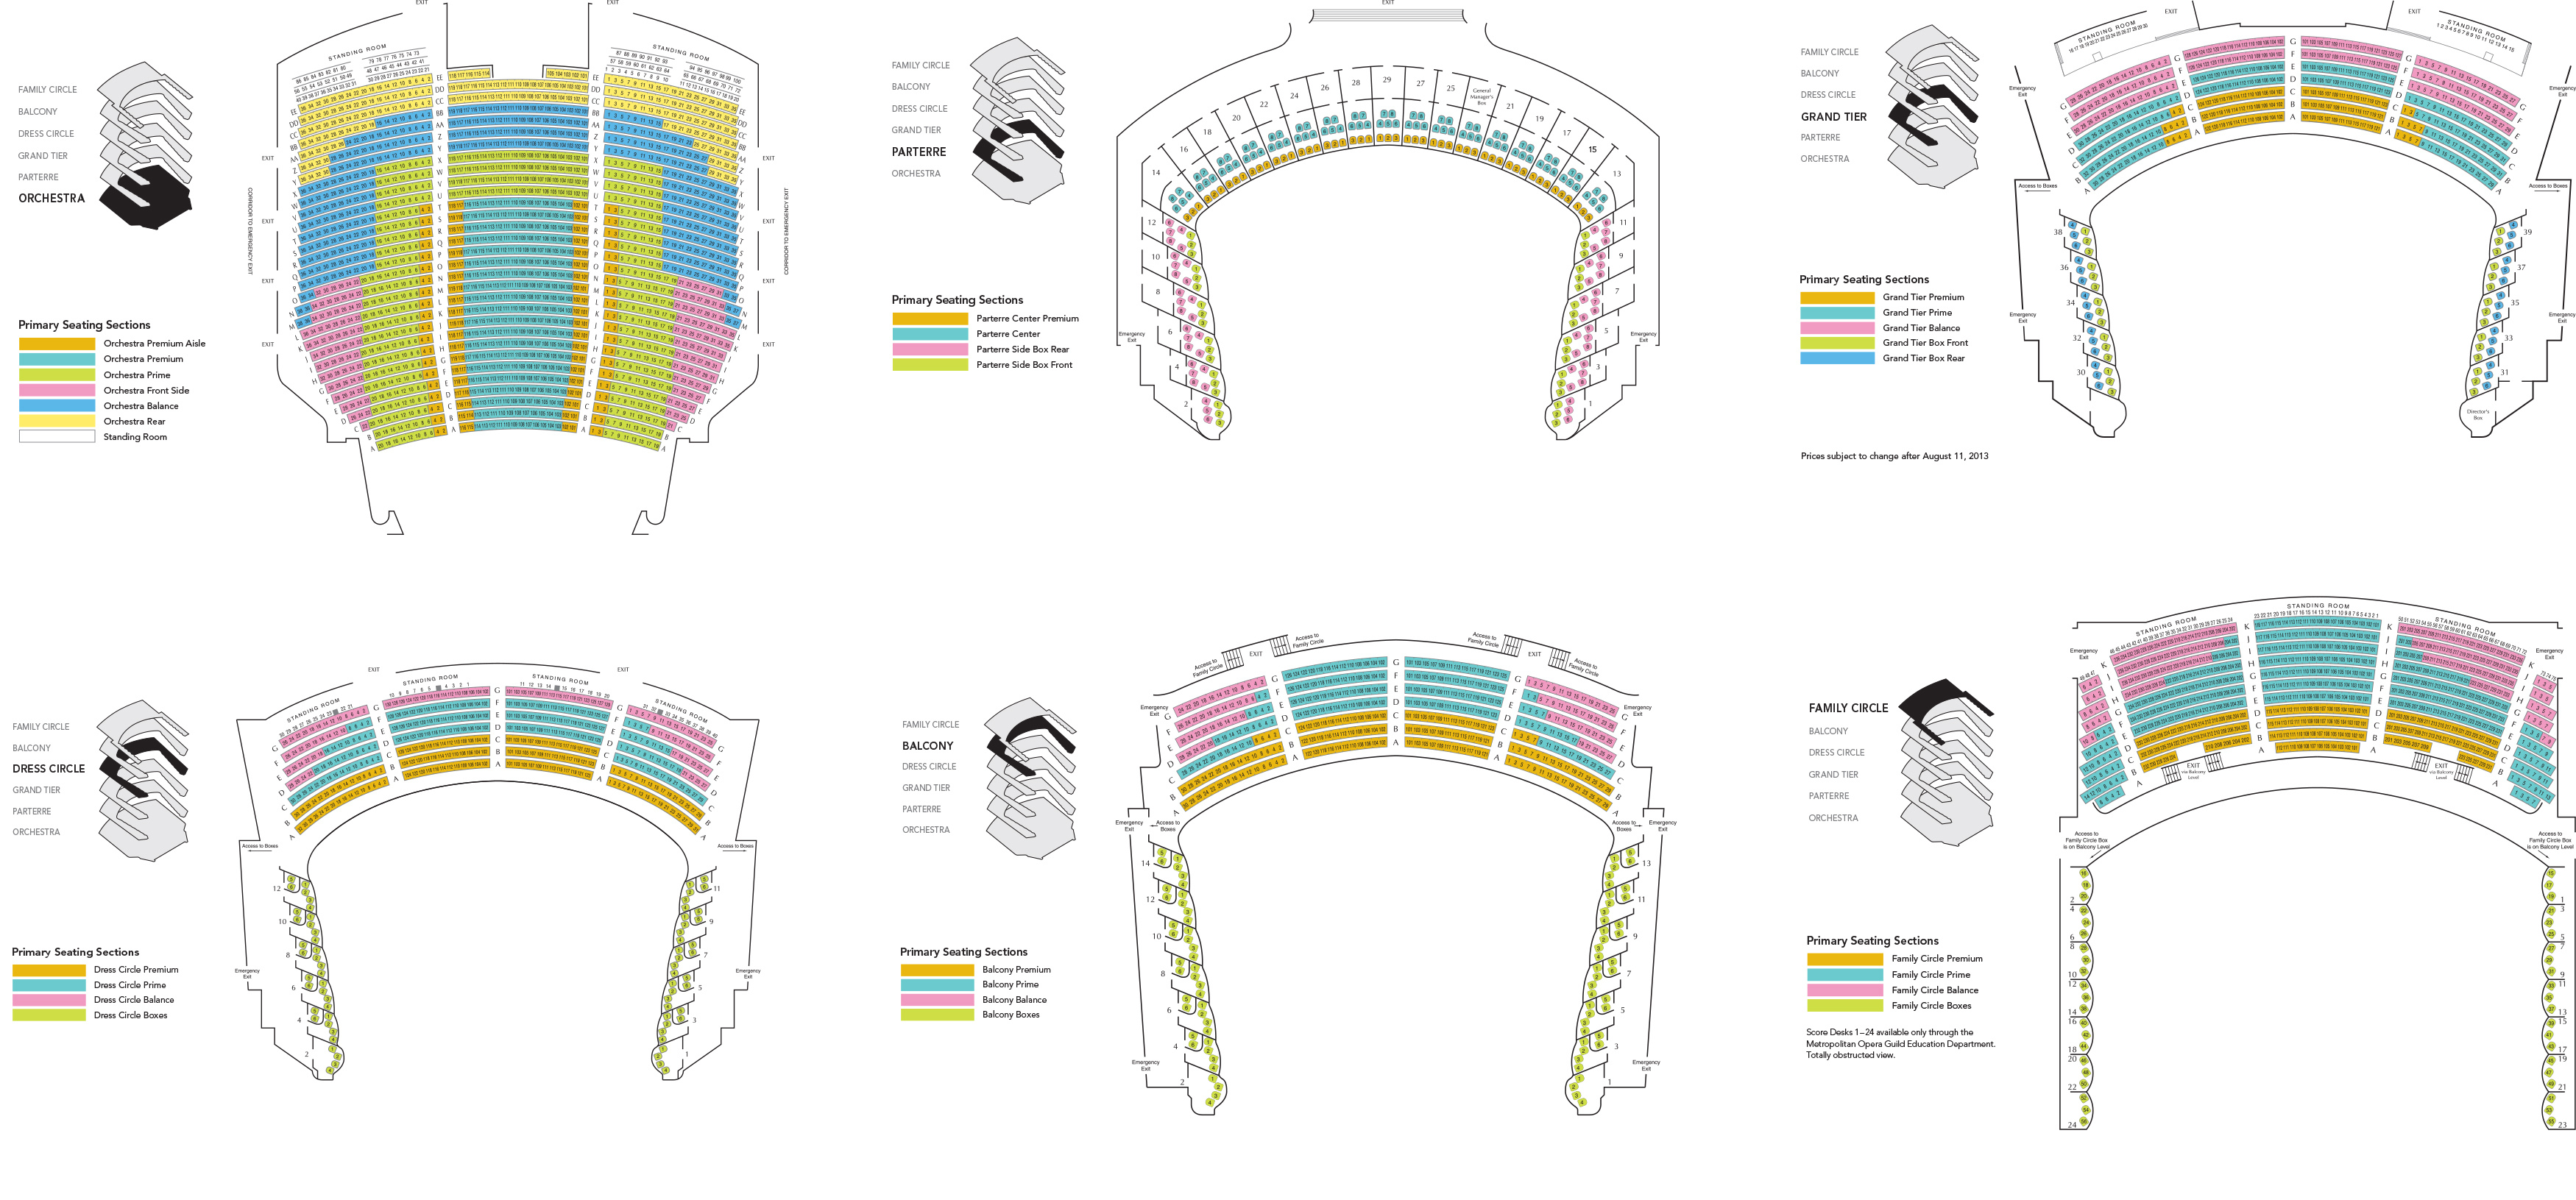 Metropolitan opera house new york tickets schedule seating